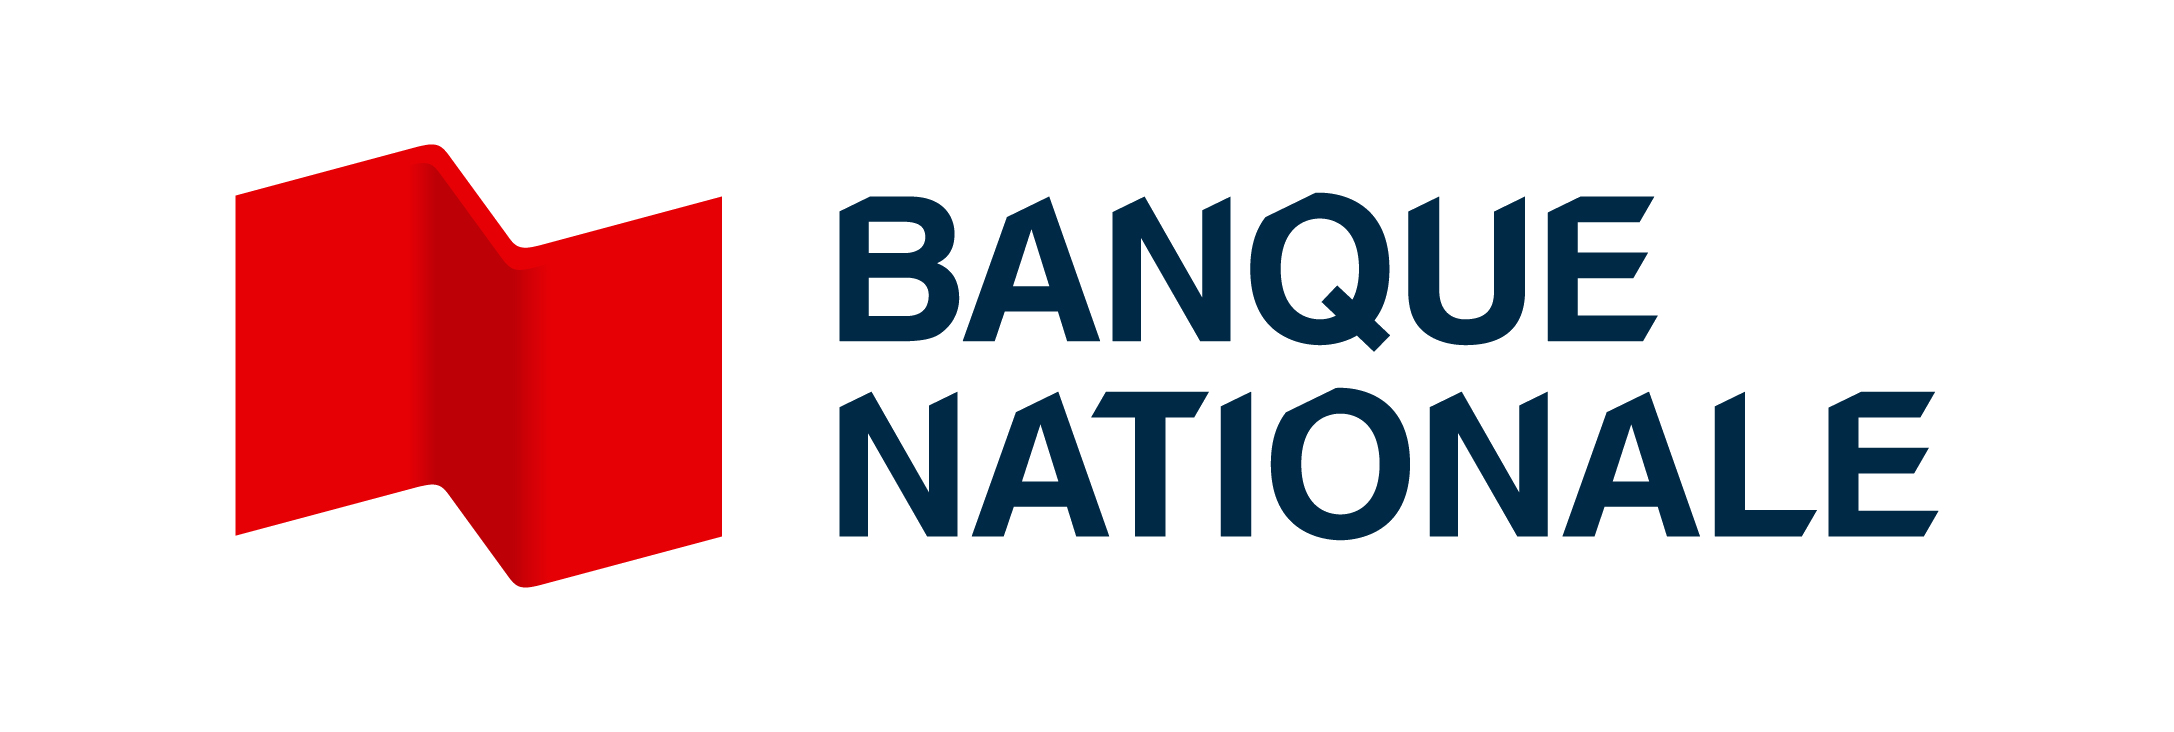 banque_nationale.png